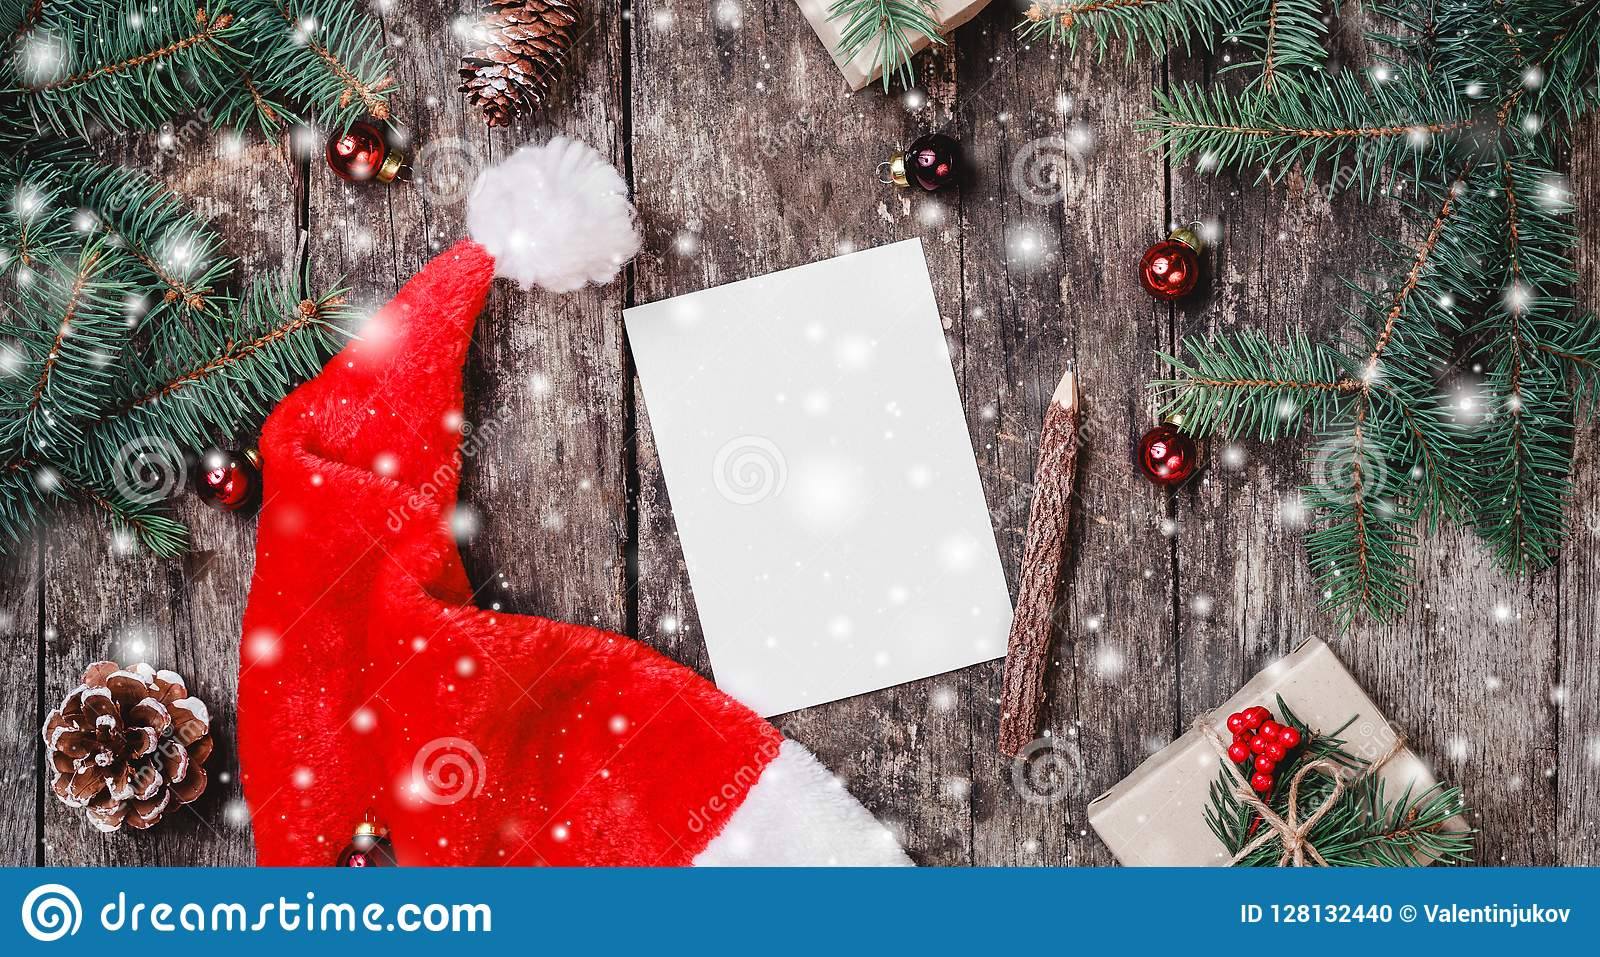 Christmas letter on wooden background with red Santa hat, Fir branches, pine cones, red decorations. Xmas and Happy New Year